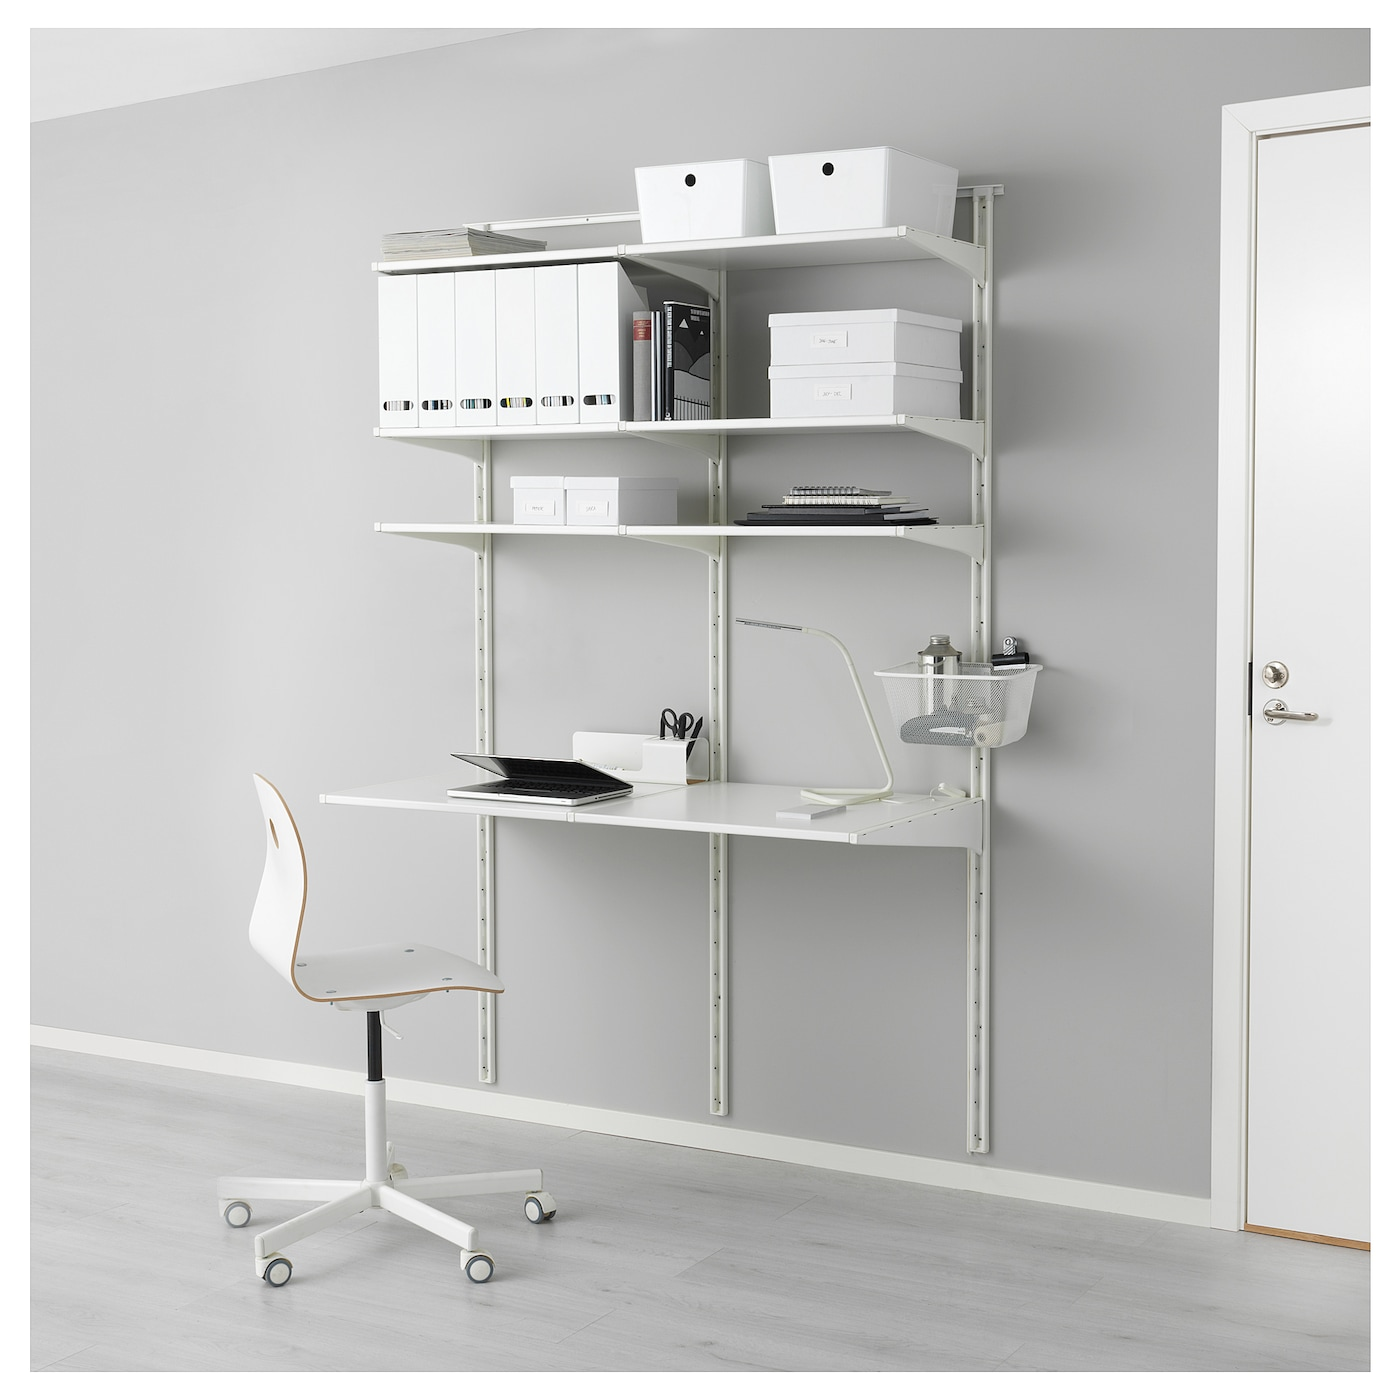 Ikea algot wall upright shelves can also be used in bathrooms and other damp areas